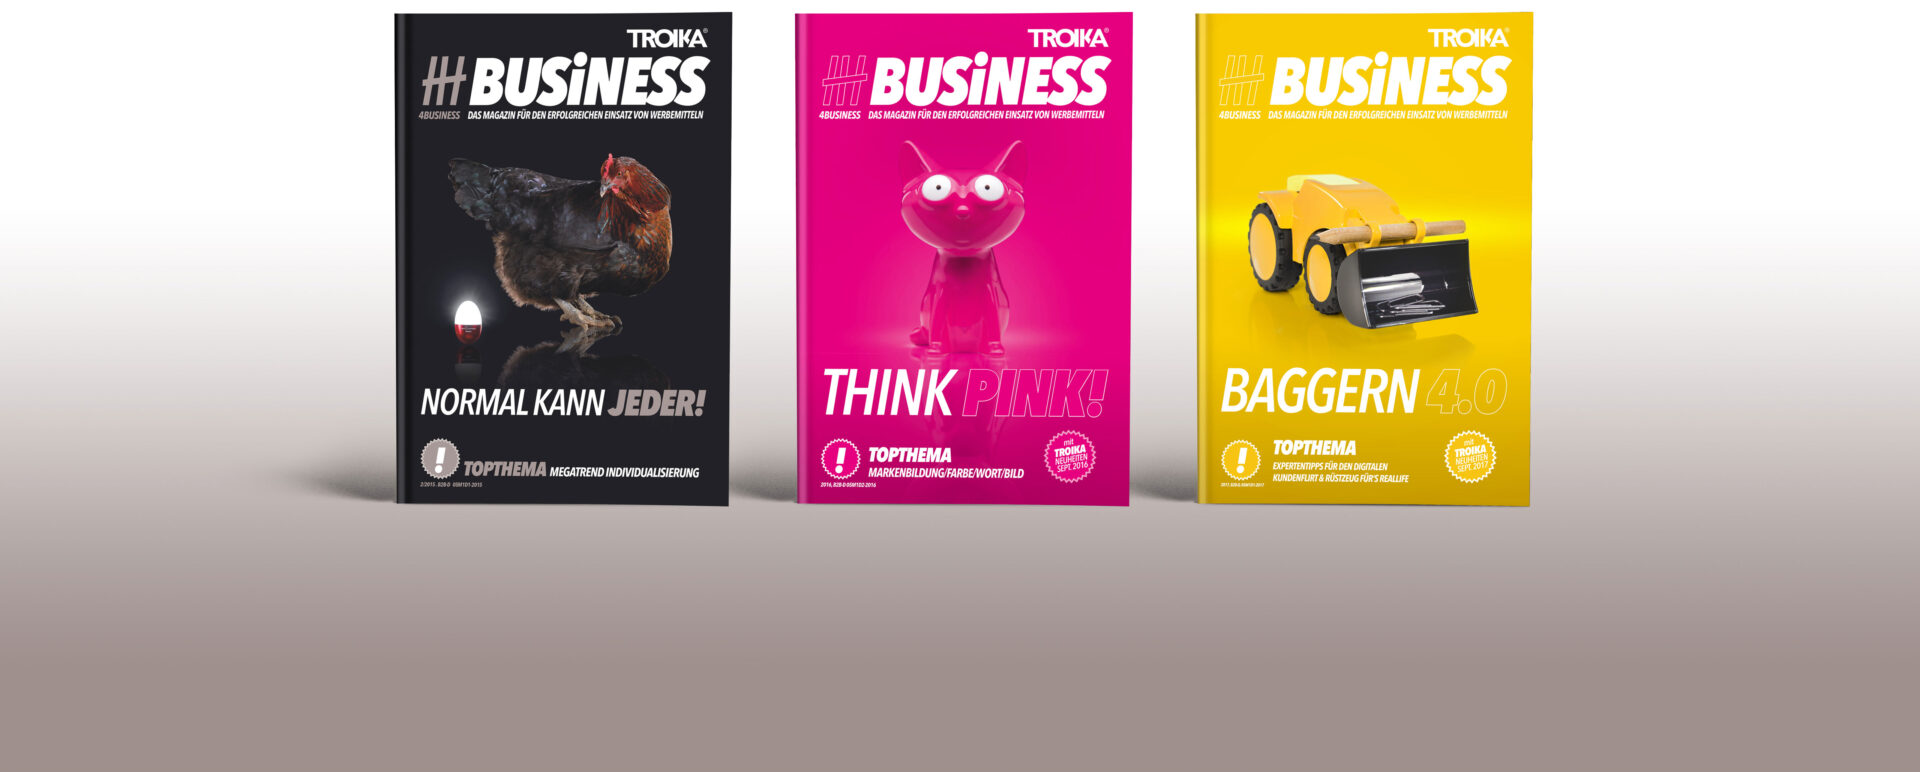 4Business - 3 Magazin-Covers